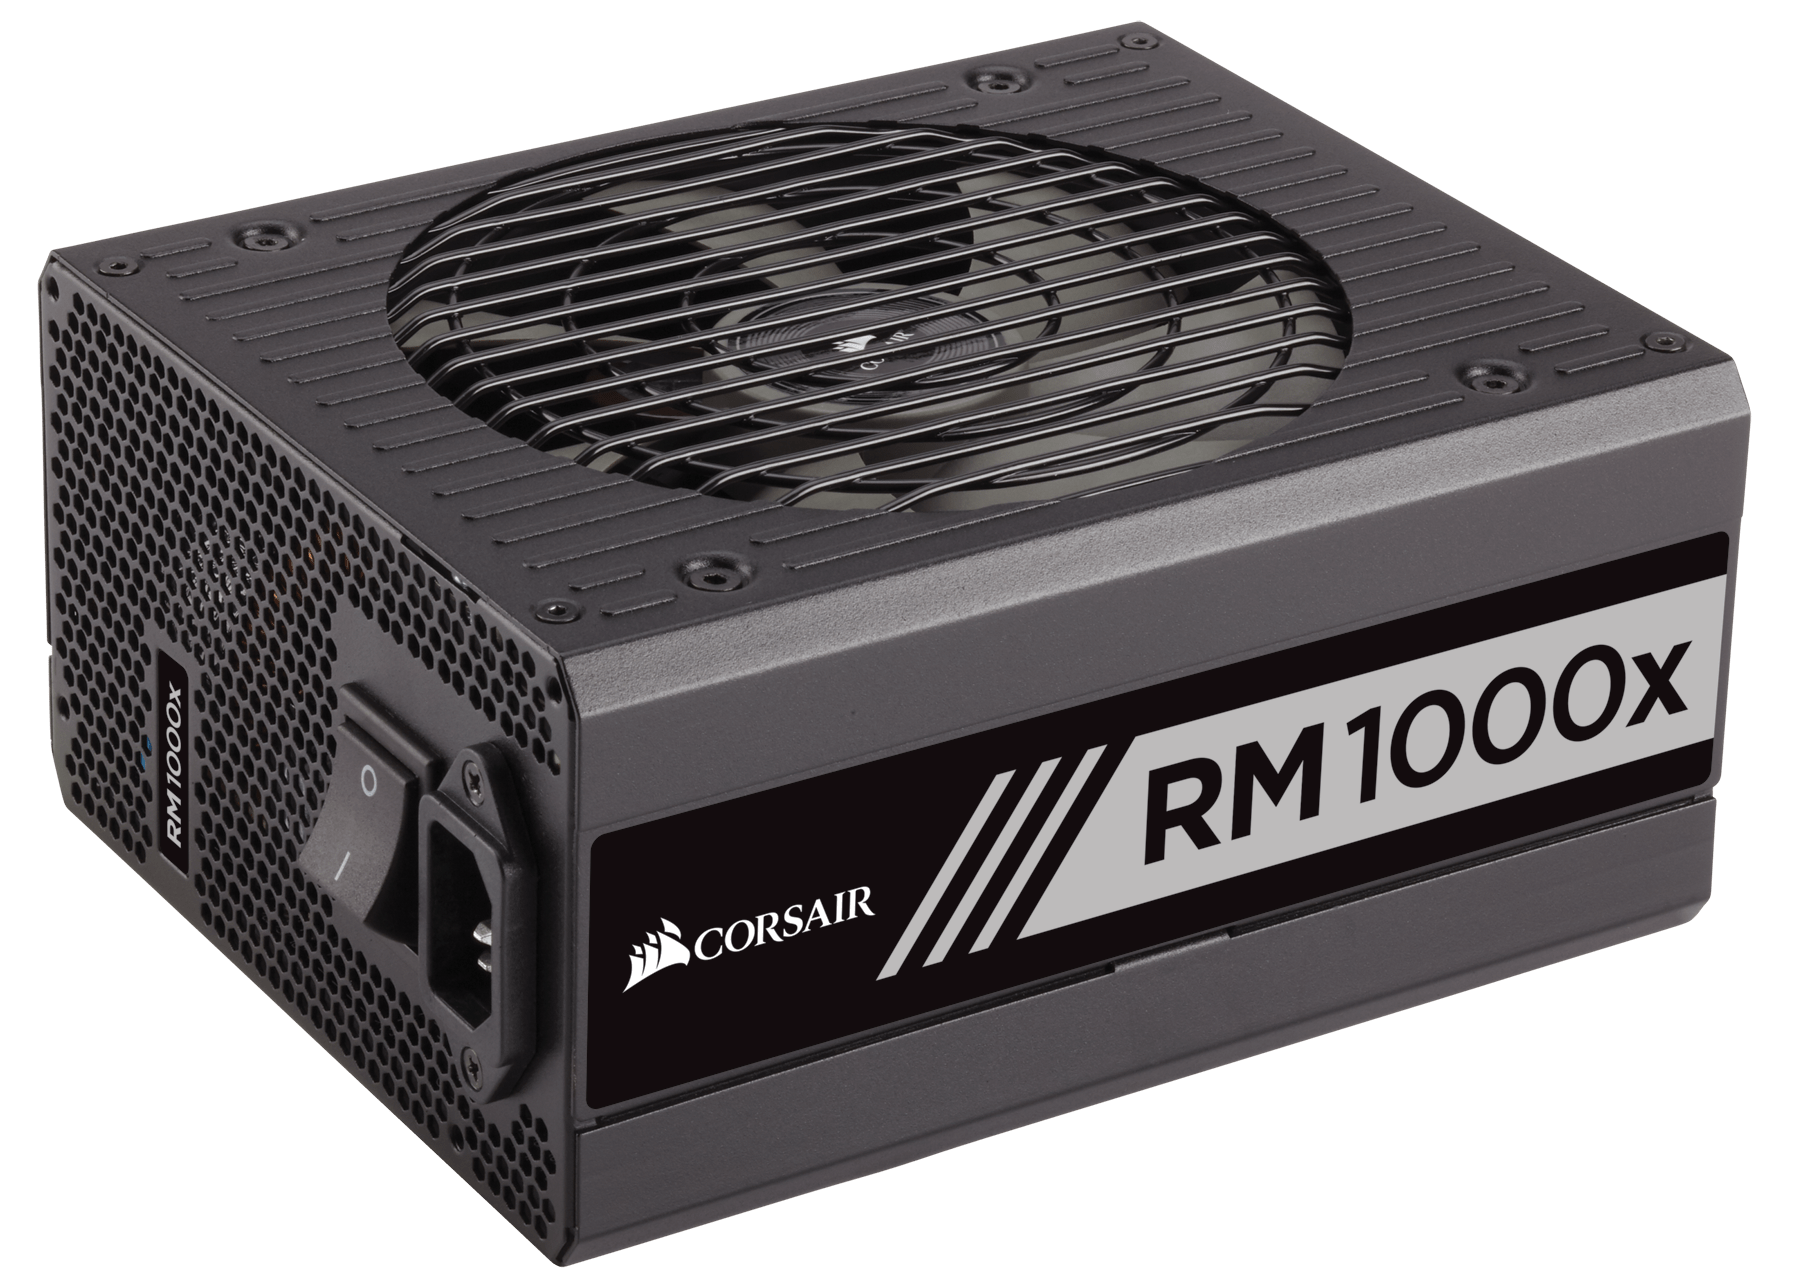 Rmx Series Rm1000x 1000 Watt 80 Plus Gold Certified Fully Replacement 12volt Dc Power Plug Optronics Accessories And Parts A The Modular Cables Make Builds Upgrades Easy With Clean Great Looking Results